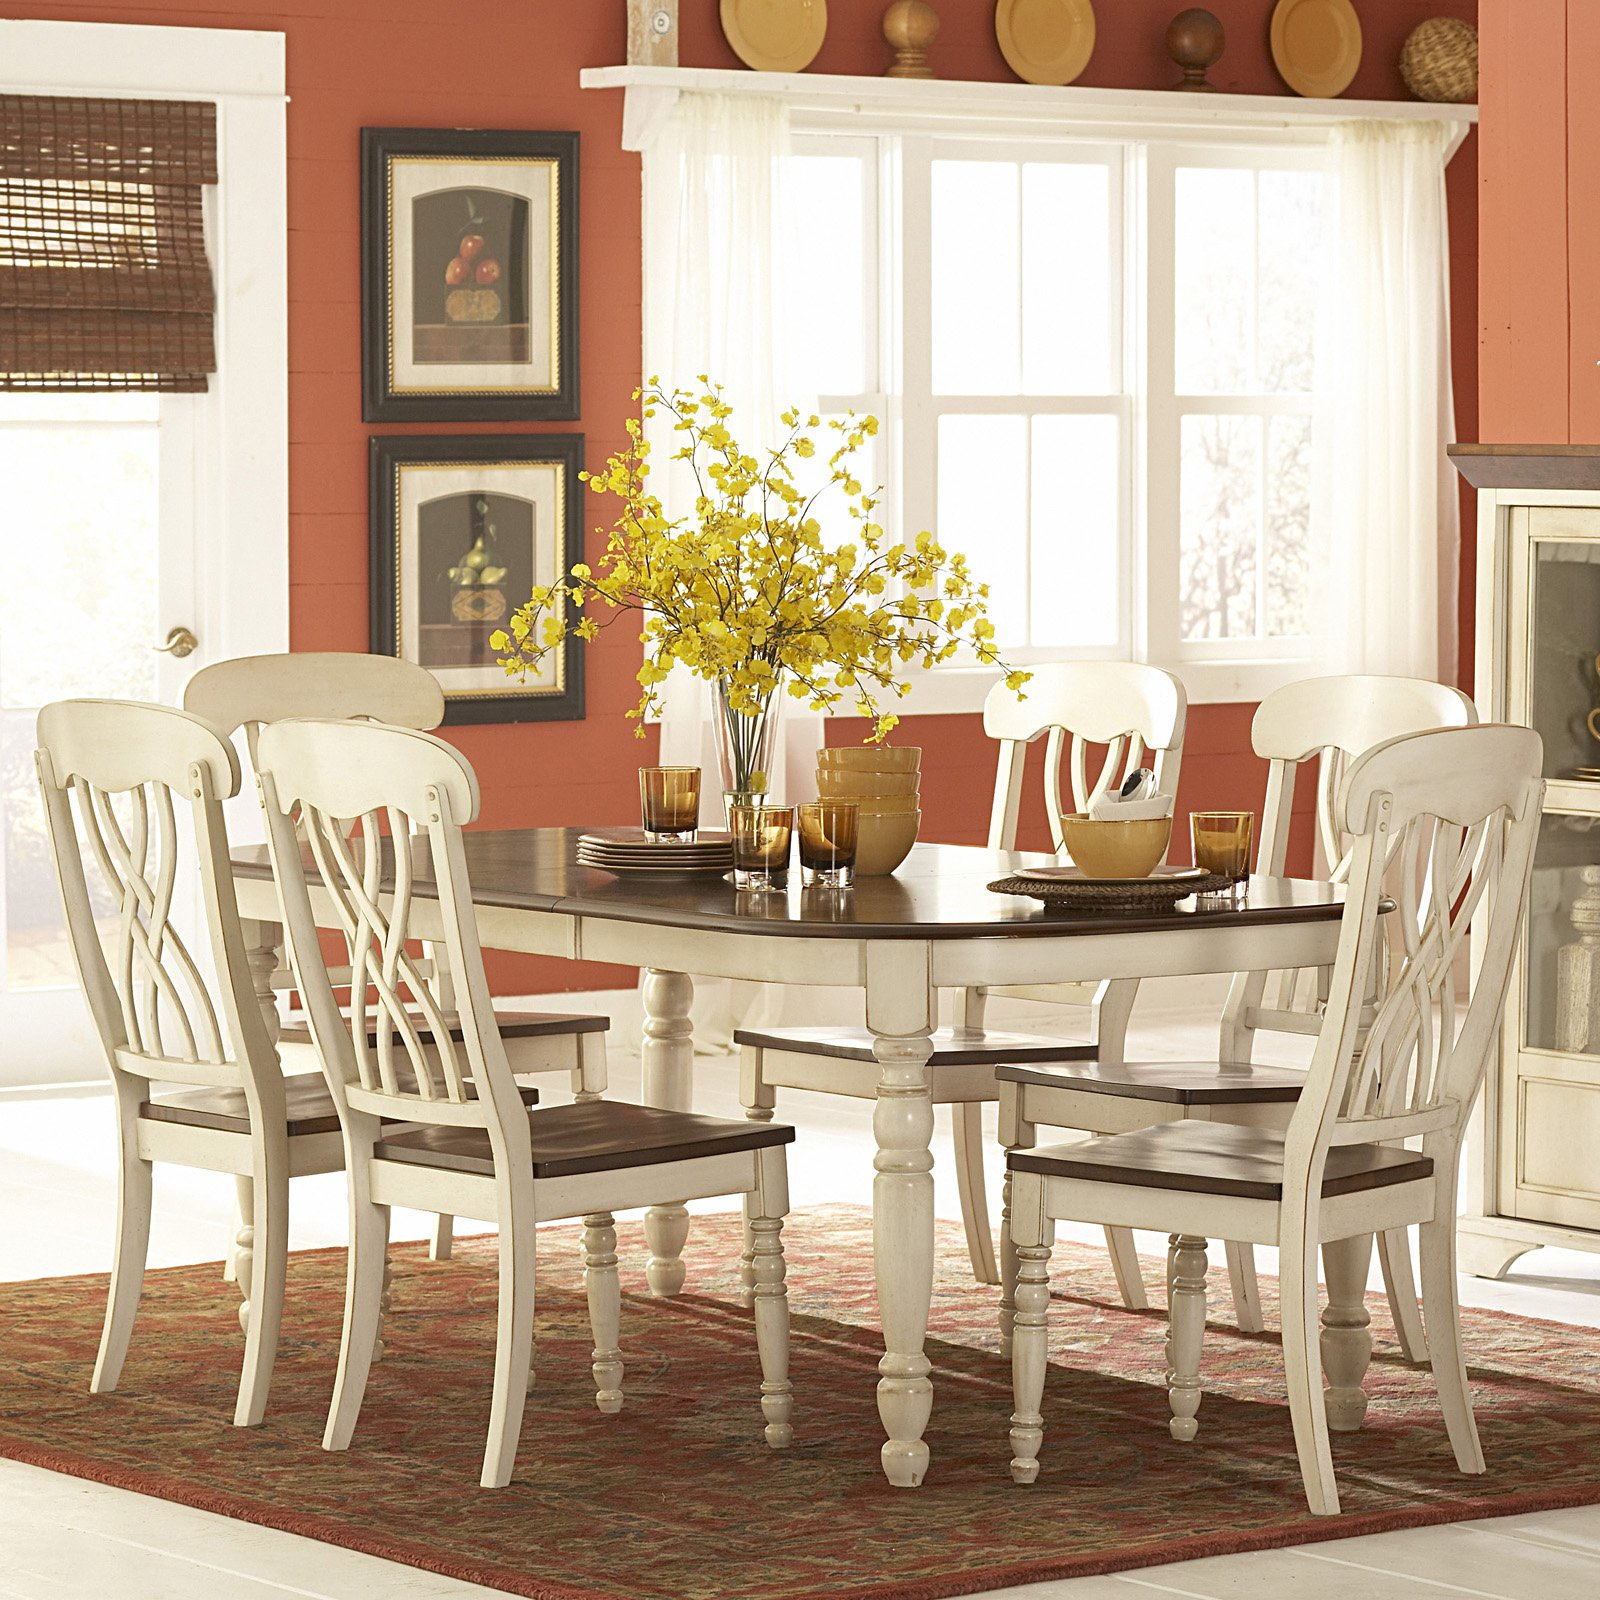 Weston Home. Ohana 7 Piece Rectangle Dining Table Set White & Cherry by Top-Line dba Homelegance